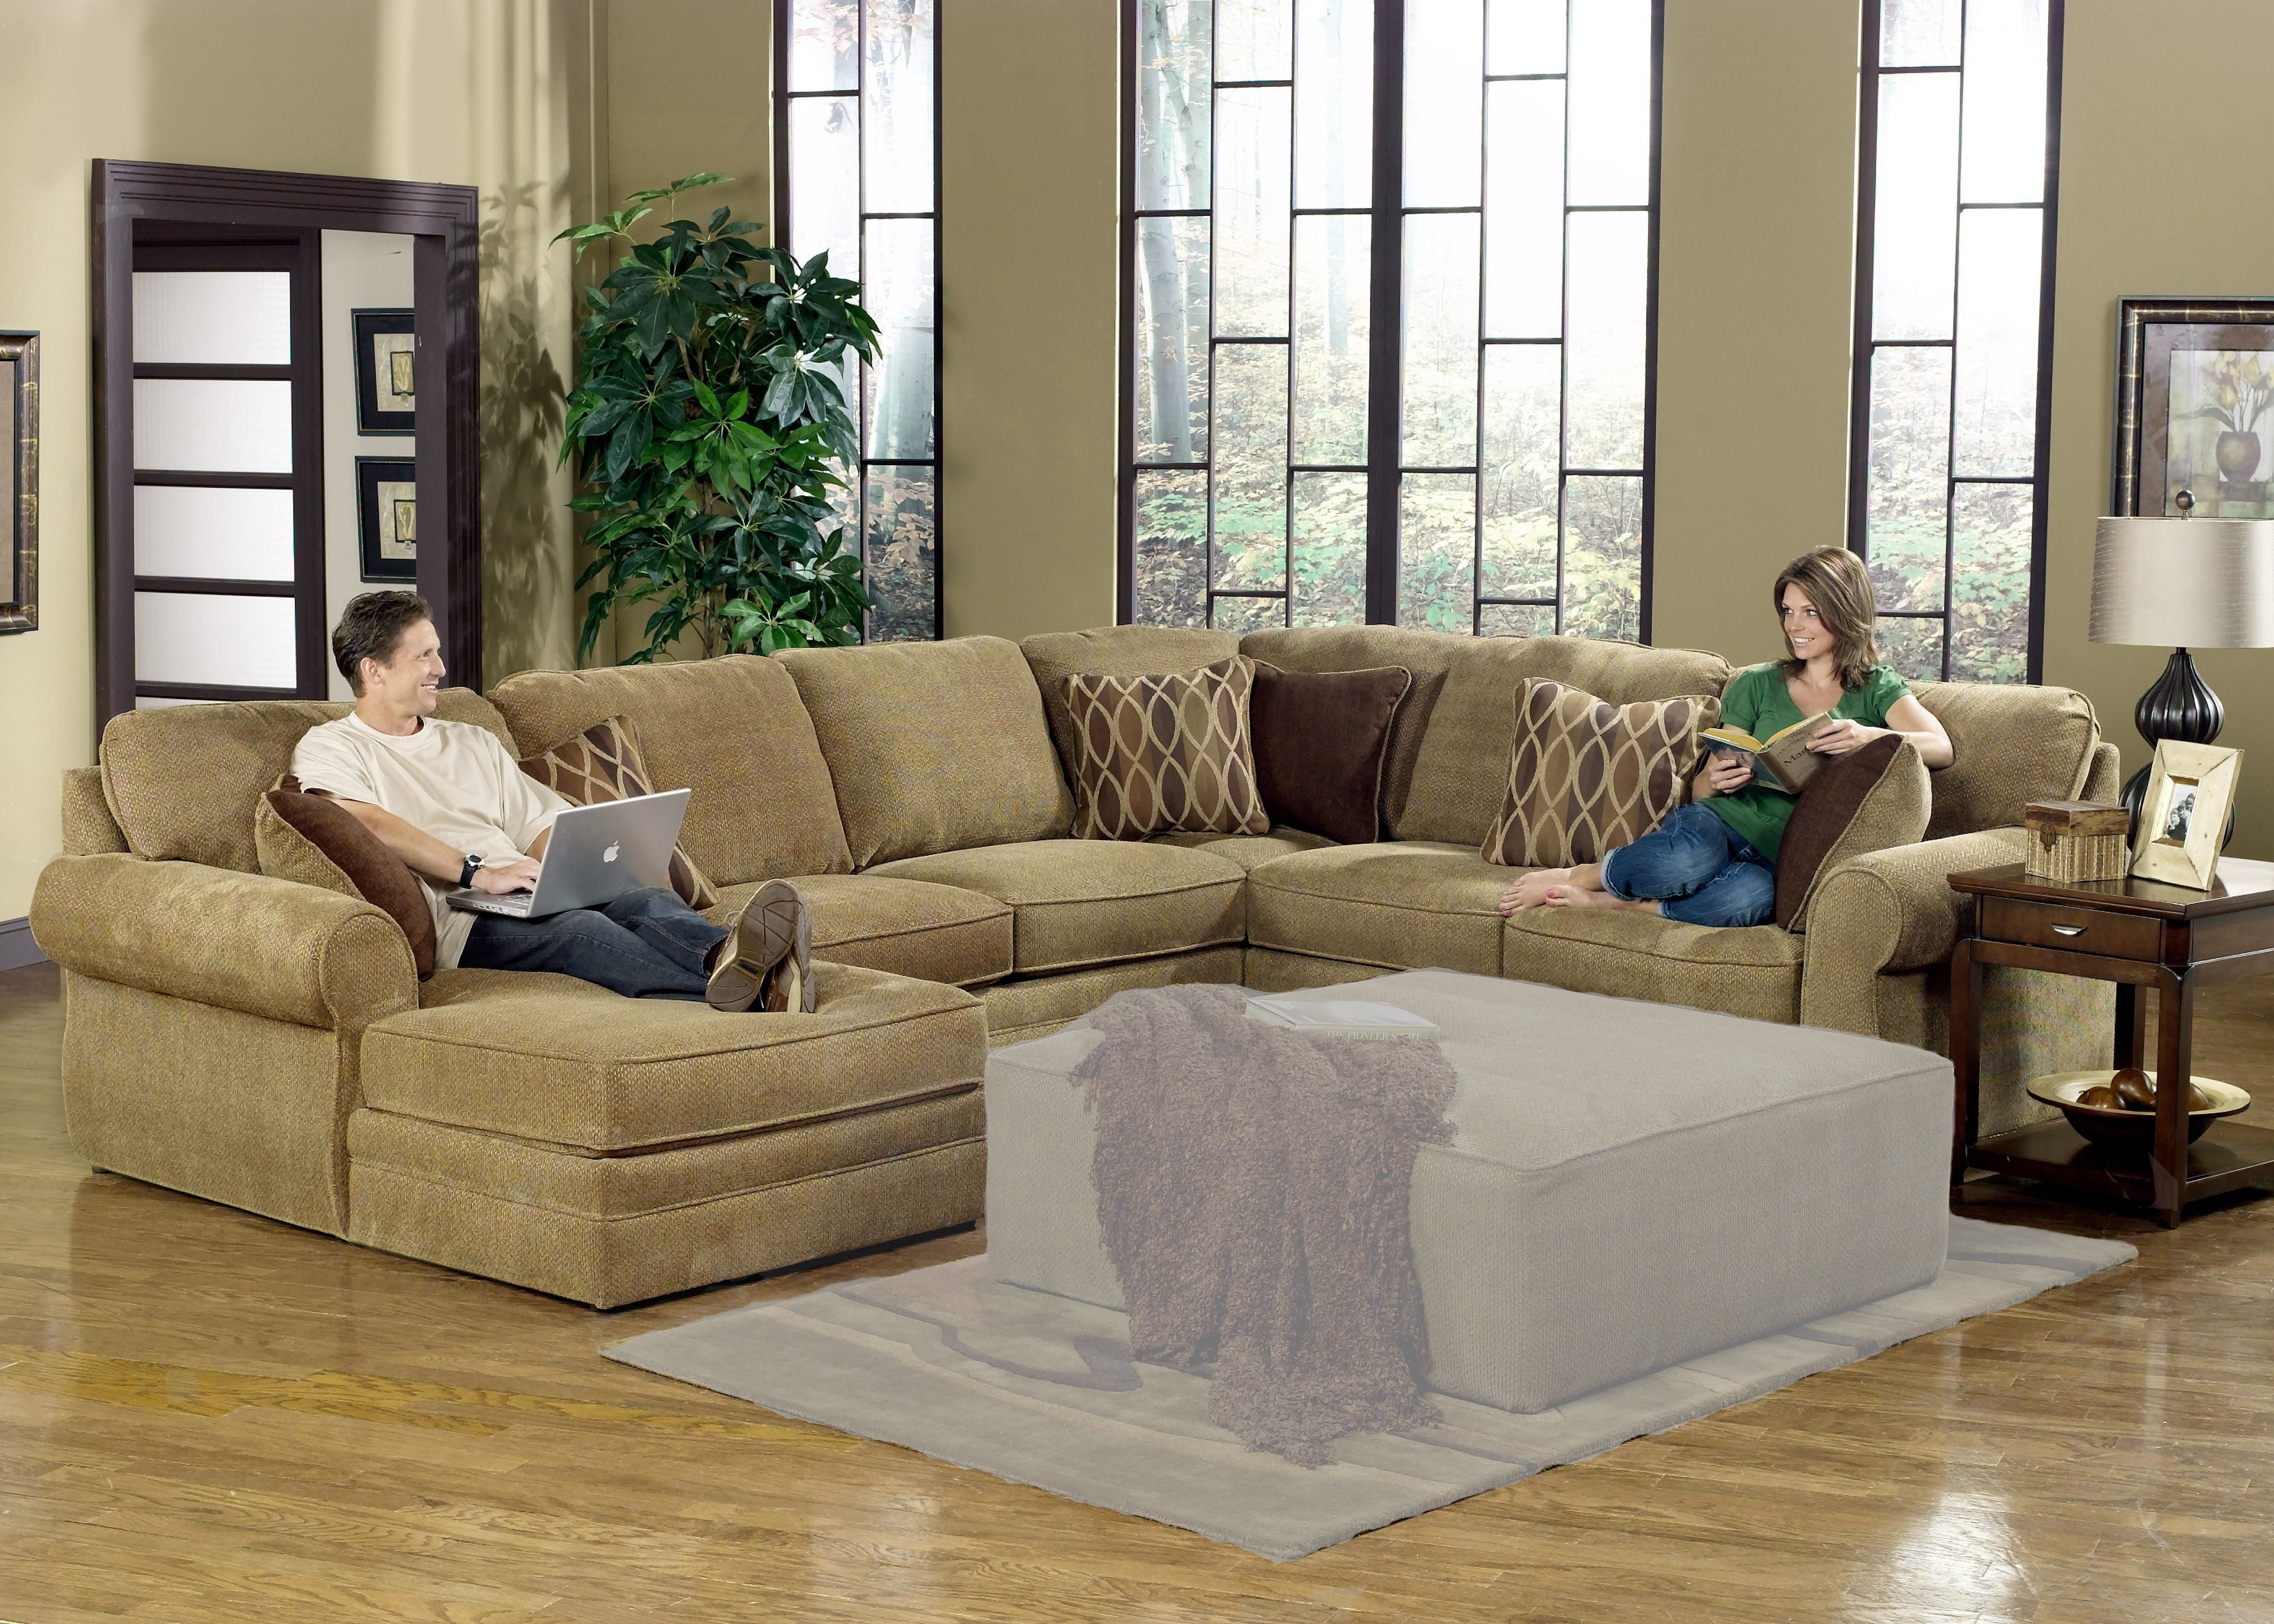 Epic Cheap U Shaped Sectional Sofas 35 About Remodel Backless With Regard To Backless Sectional Sofa (Image 11 of 15)